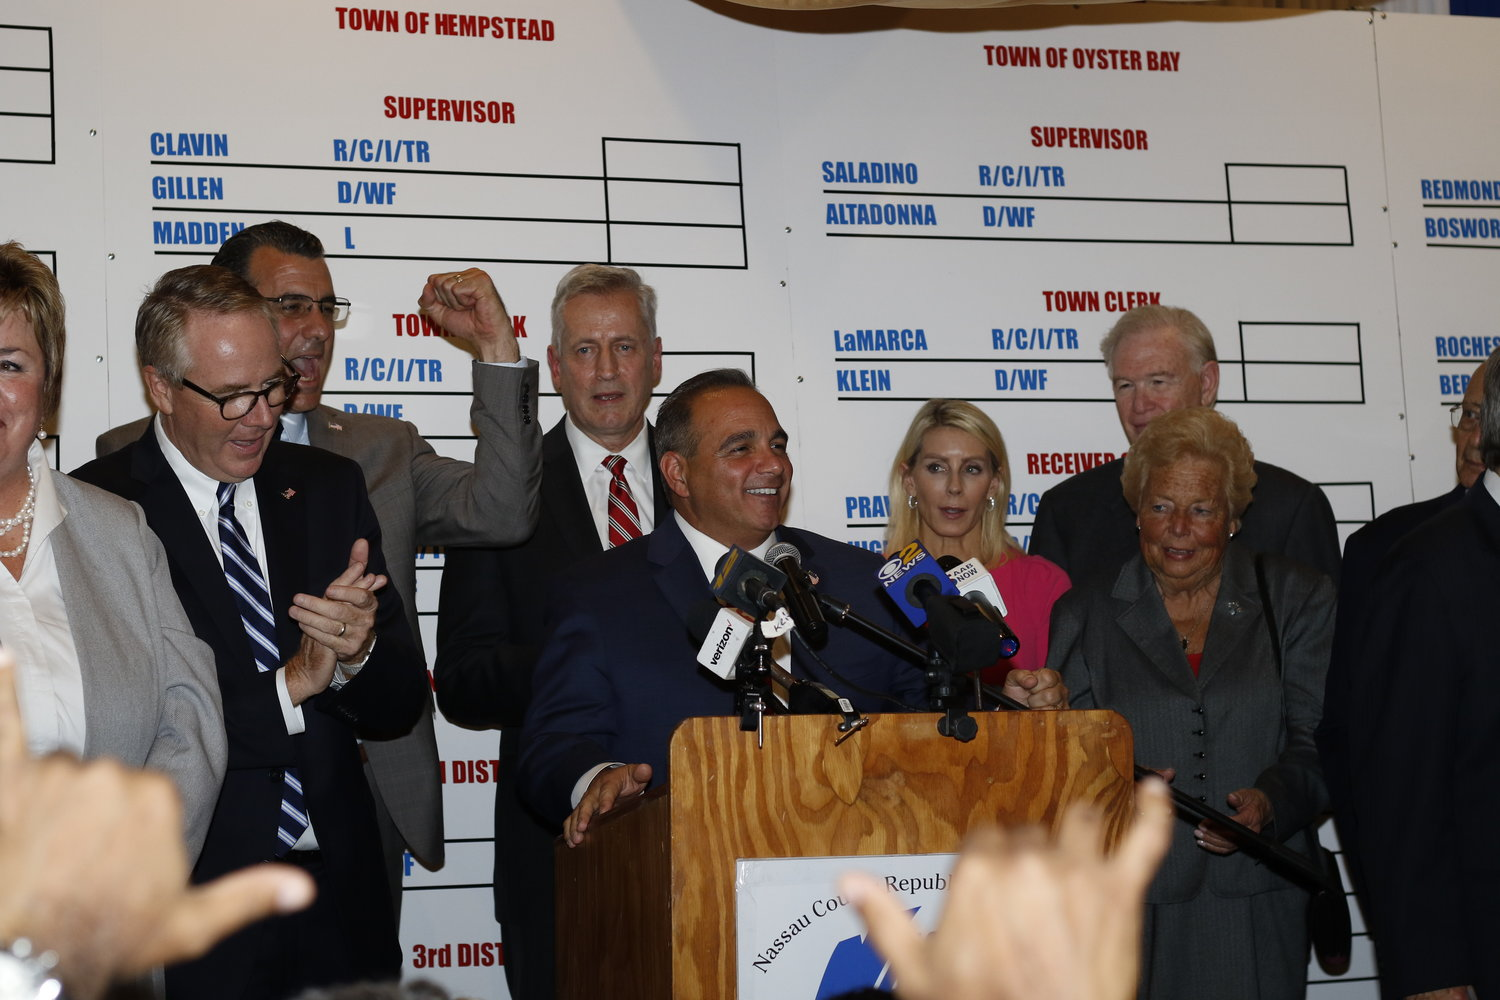 Councilman Steve Labriola, center, celebrated winning a second term on the board.